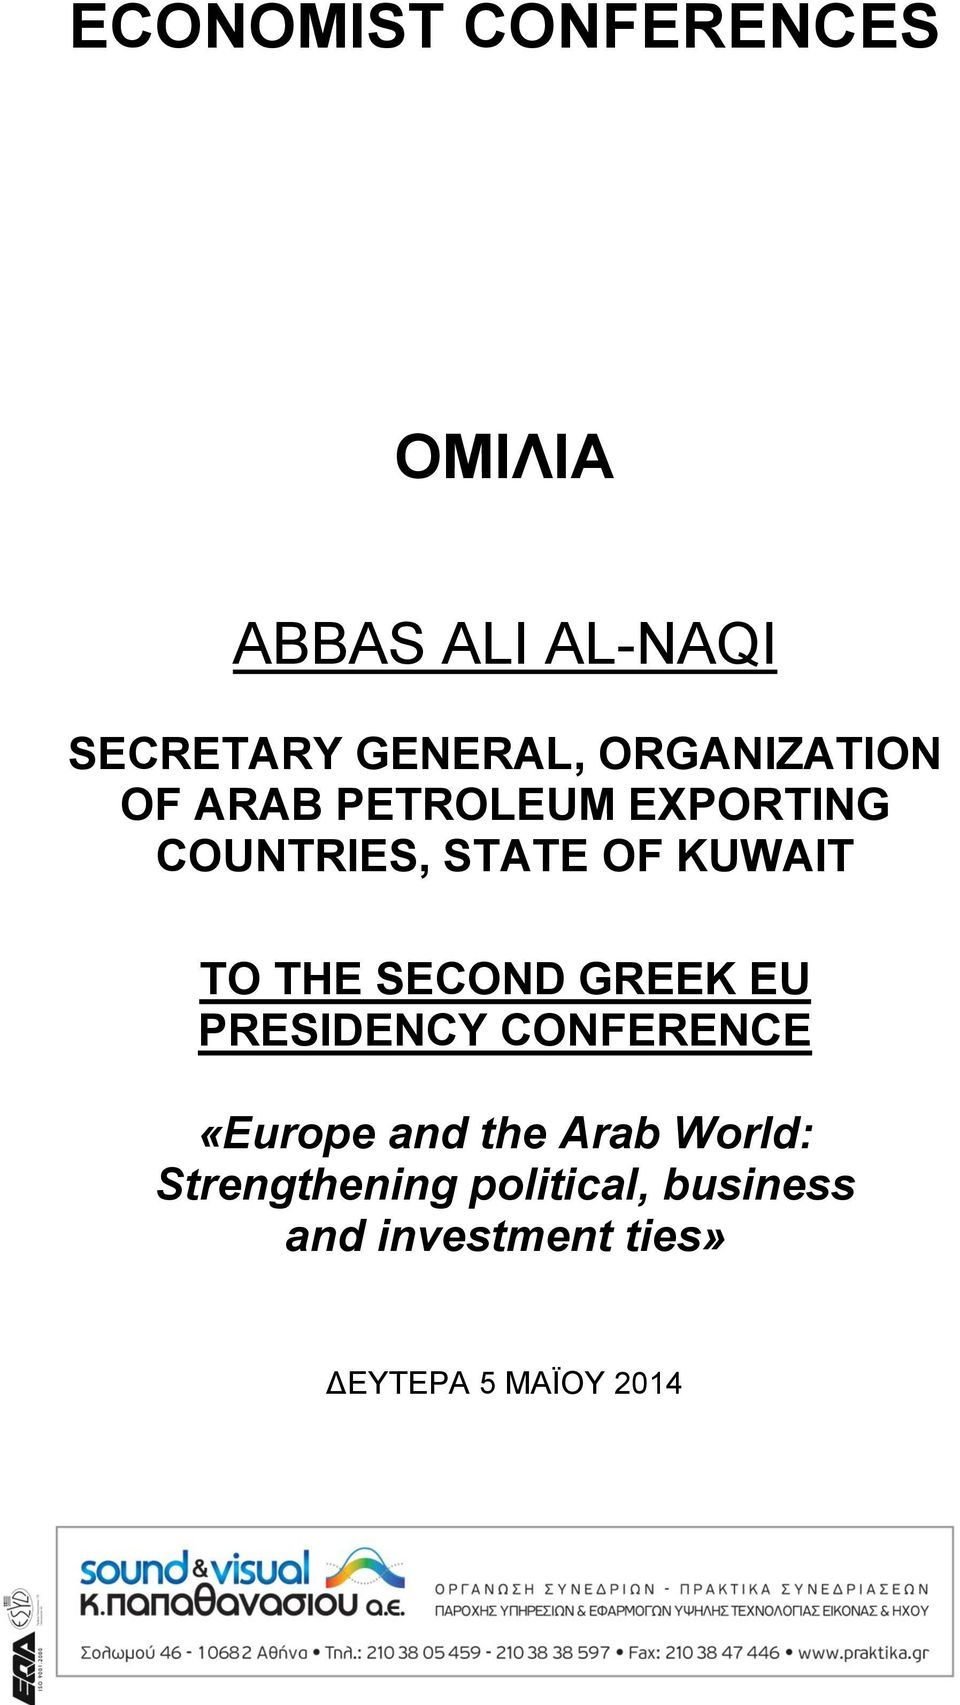 THE SECOND GREEK EU PRESIDENCY CONFERENCE «Europe and the Arab World: